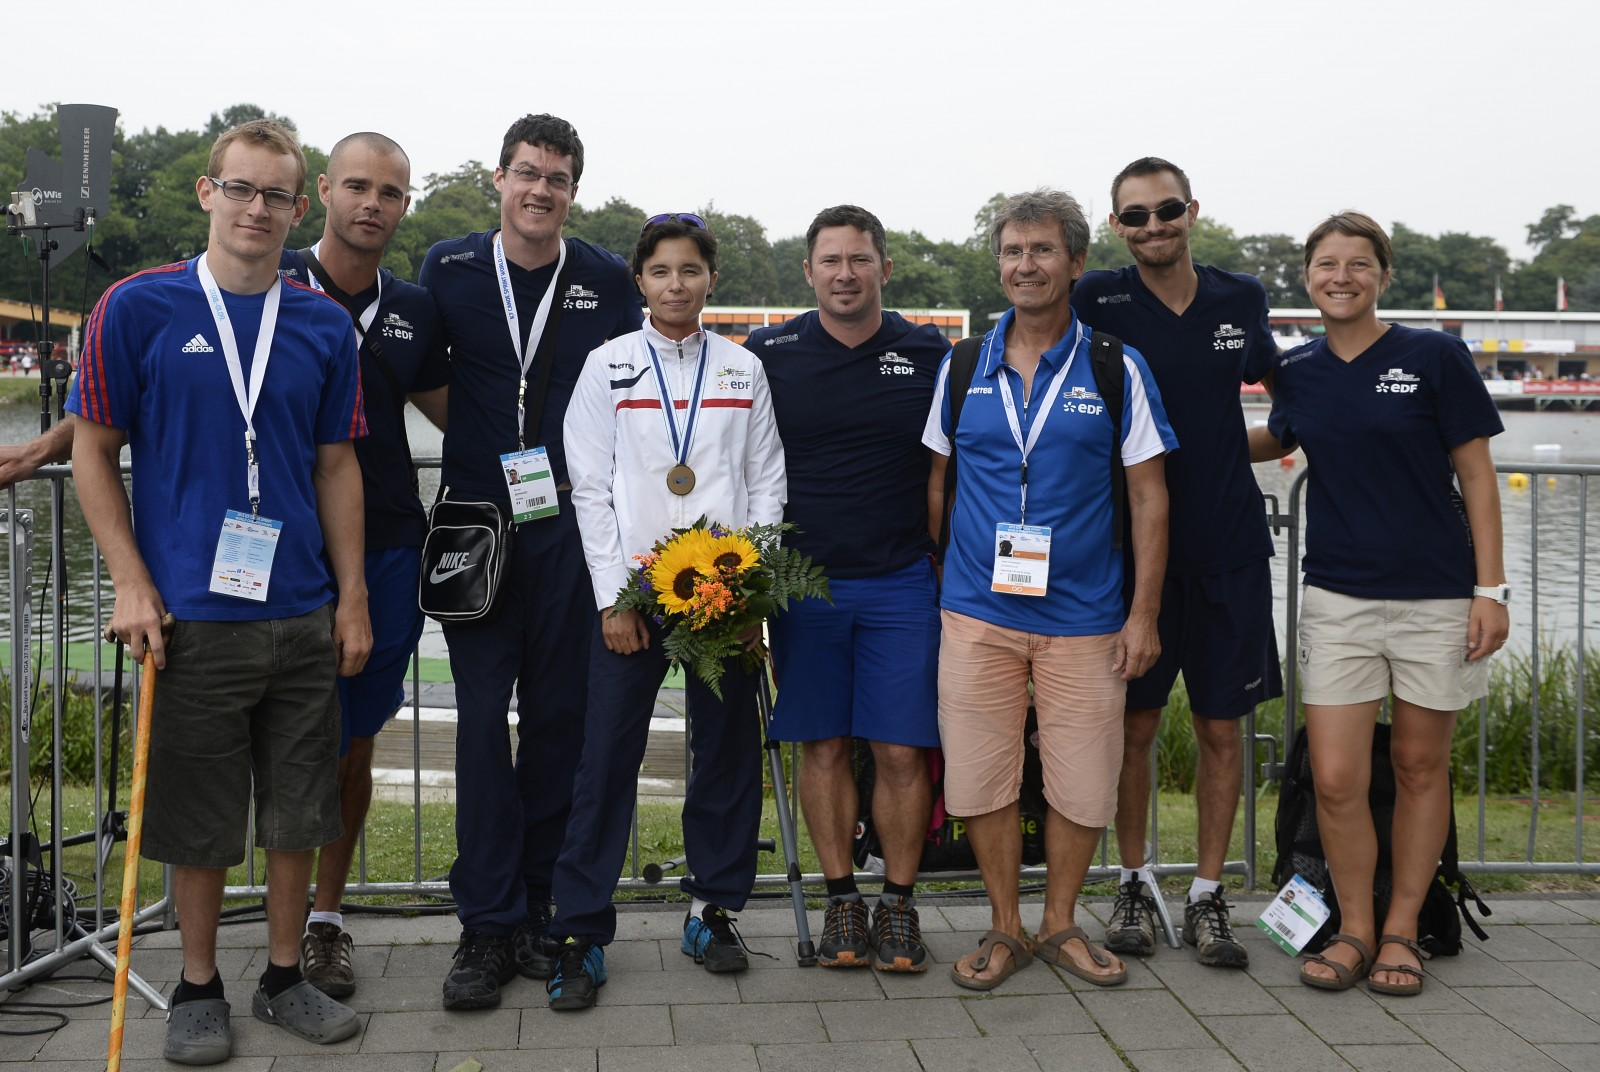 CANOE - SPRINT WORLD CHAMPIONSHIPS DUISBURG 2013 - DAY 2